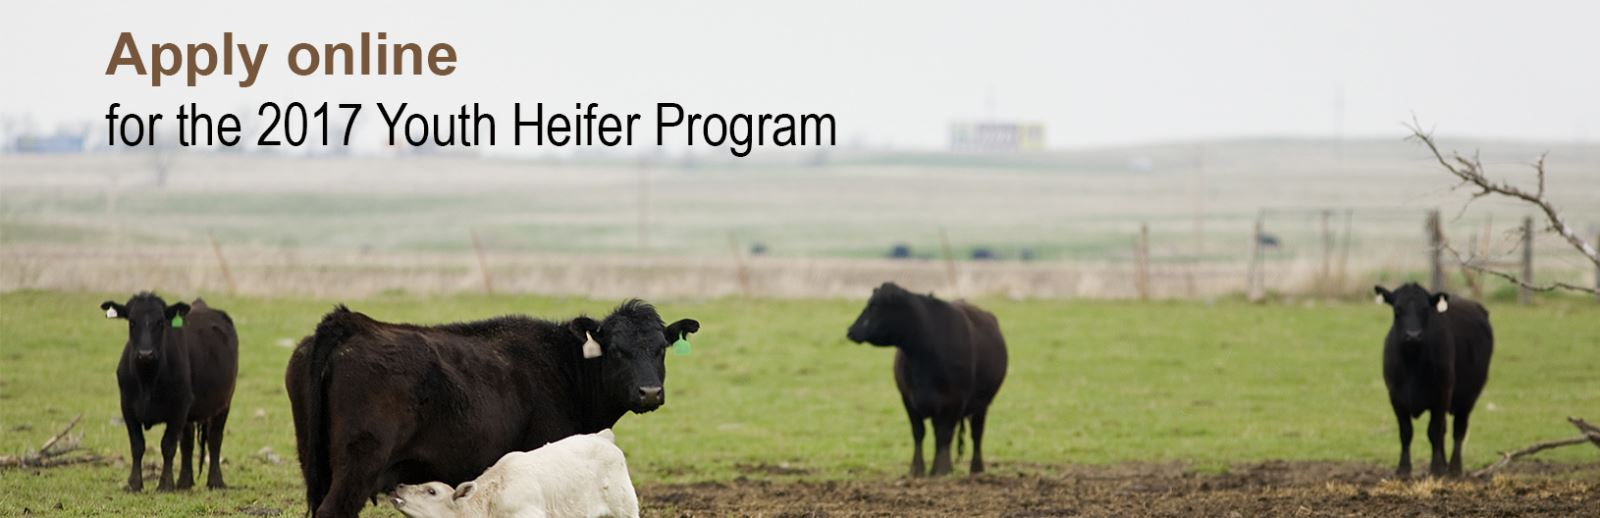 Youth Heifer Home Page